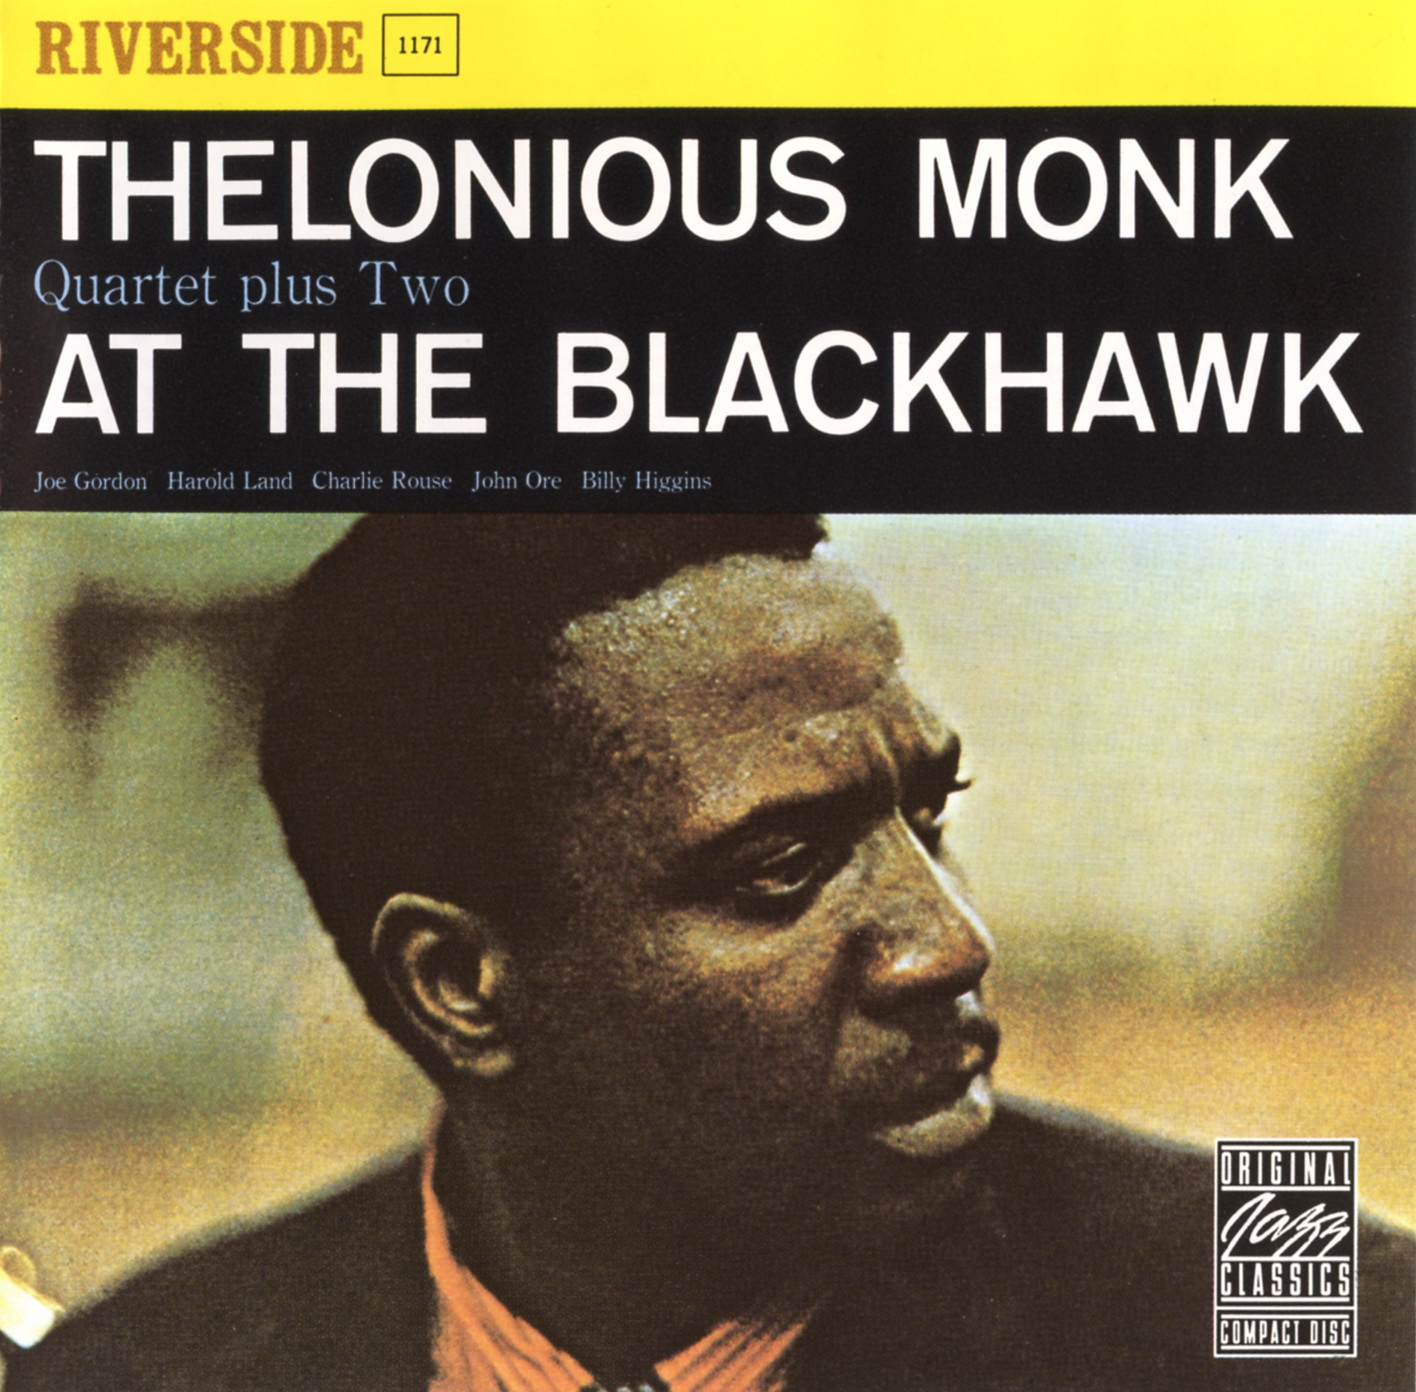 Thelonious Monk Quartet plus Two - At The Blackhawk (1960) [Remastered 1987]